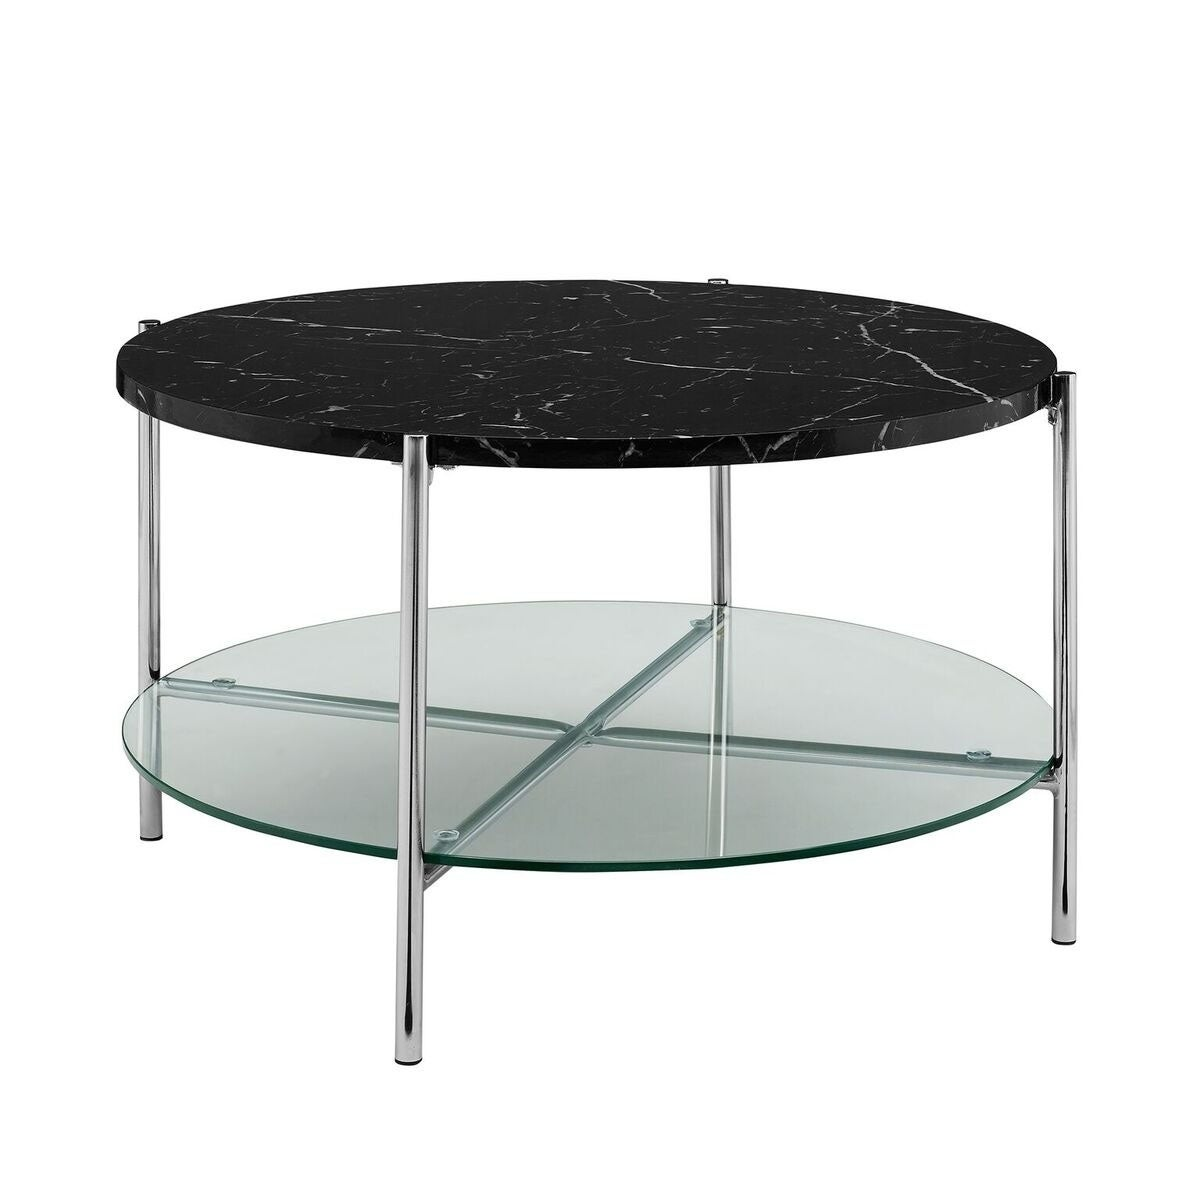 Office Accents 32 Round Coffee Table With Black Marble Top Glass Shelf And Chrome Legs Overstock 28674270